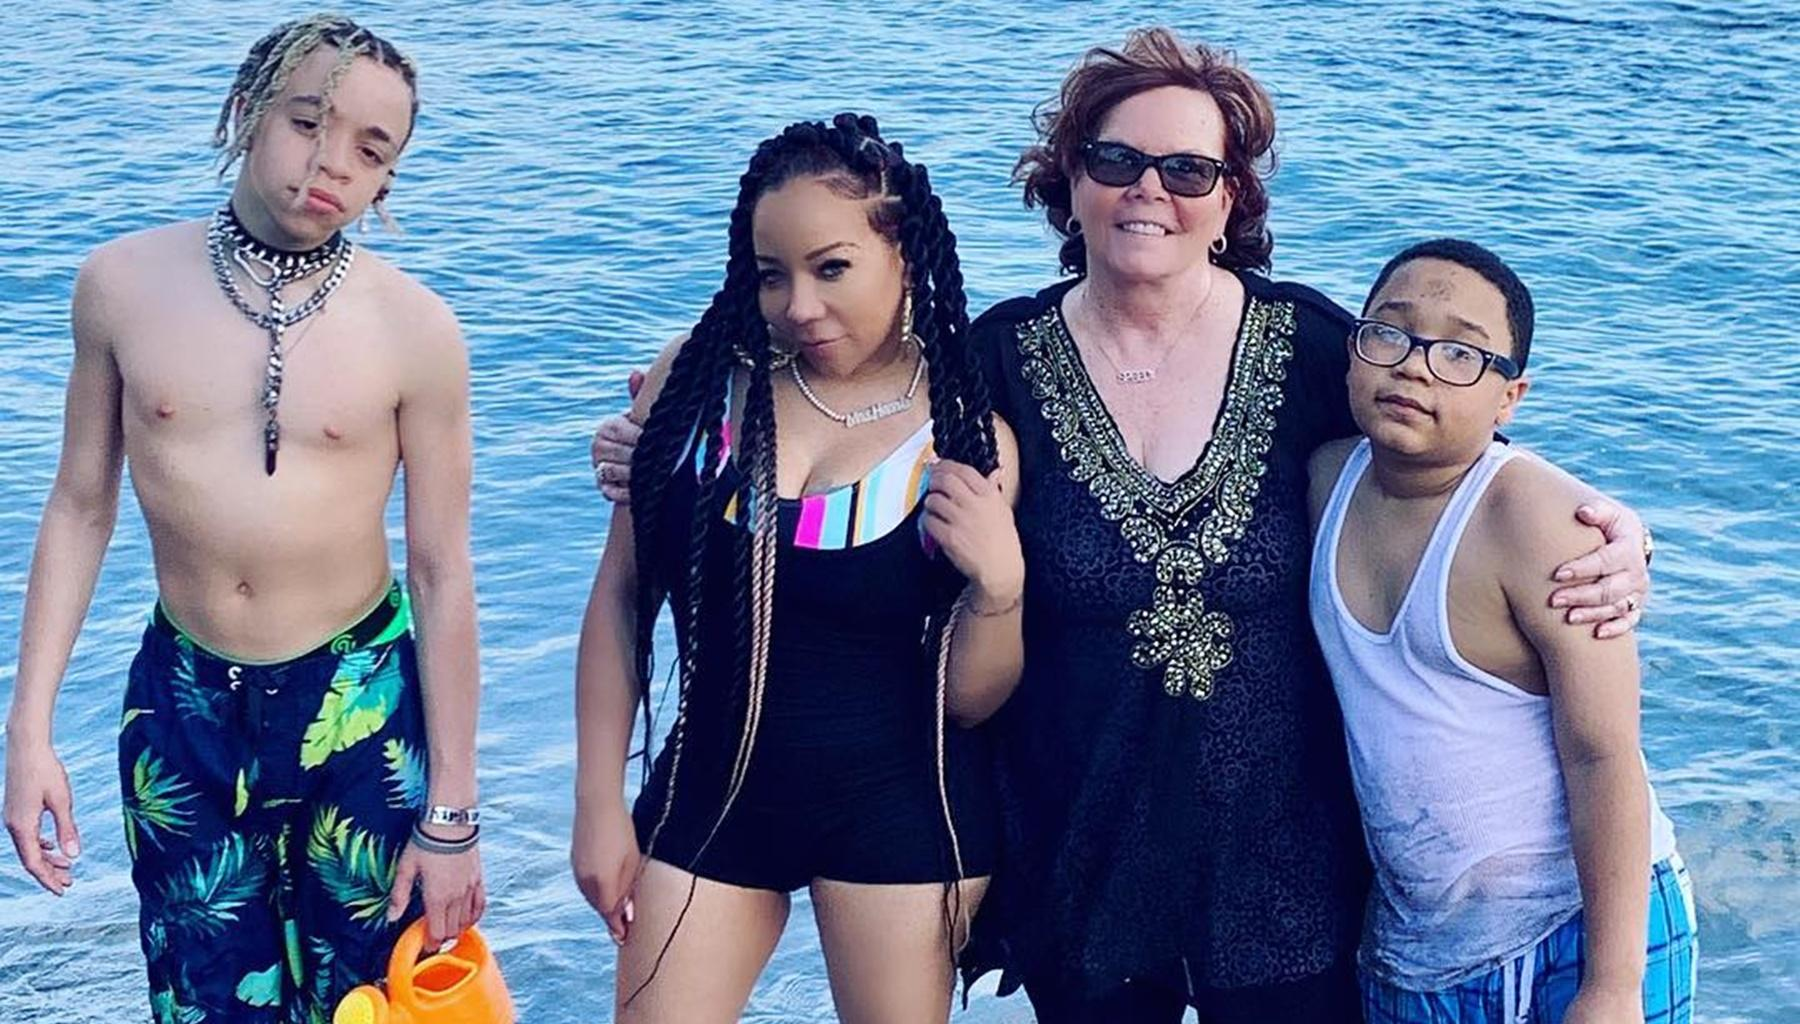 T.I. Flexes Muscles In Hawaii Vacation Pictures As He Remembers His Sister -- Tiny Harris' Family's Bond Has Fans Feeling Upbeat